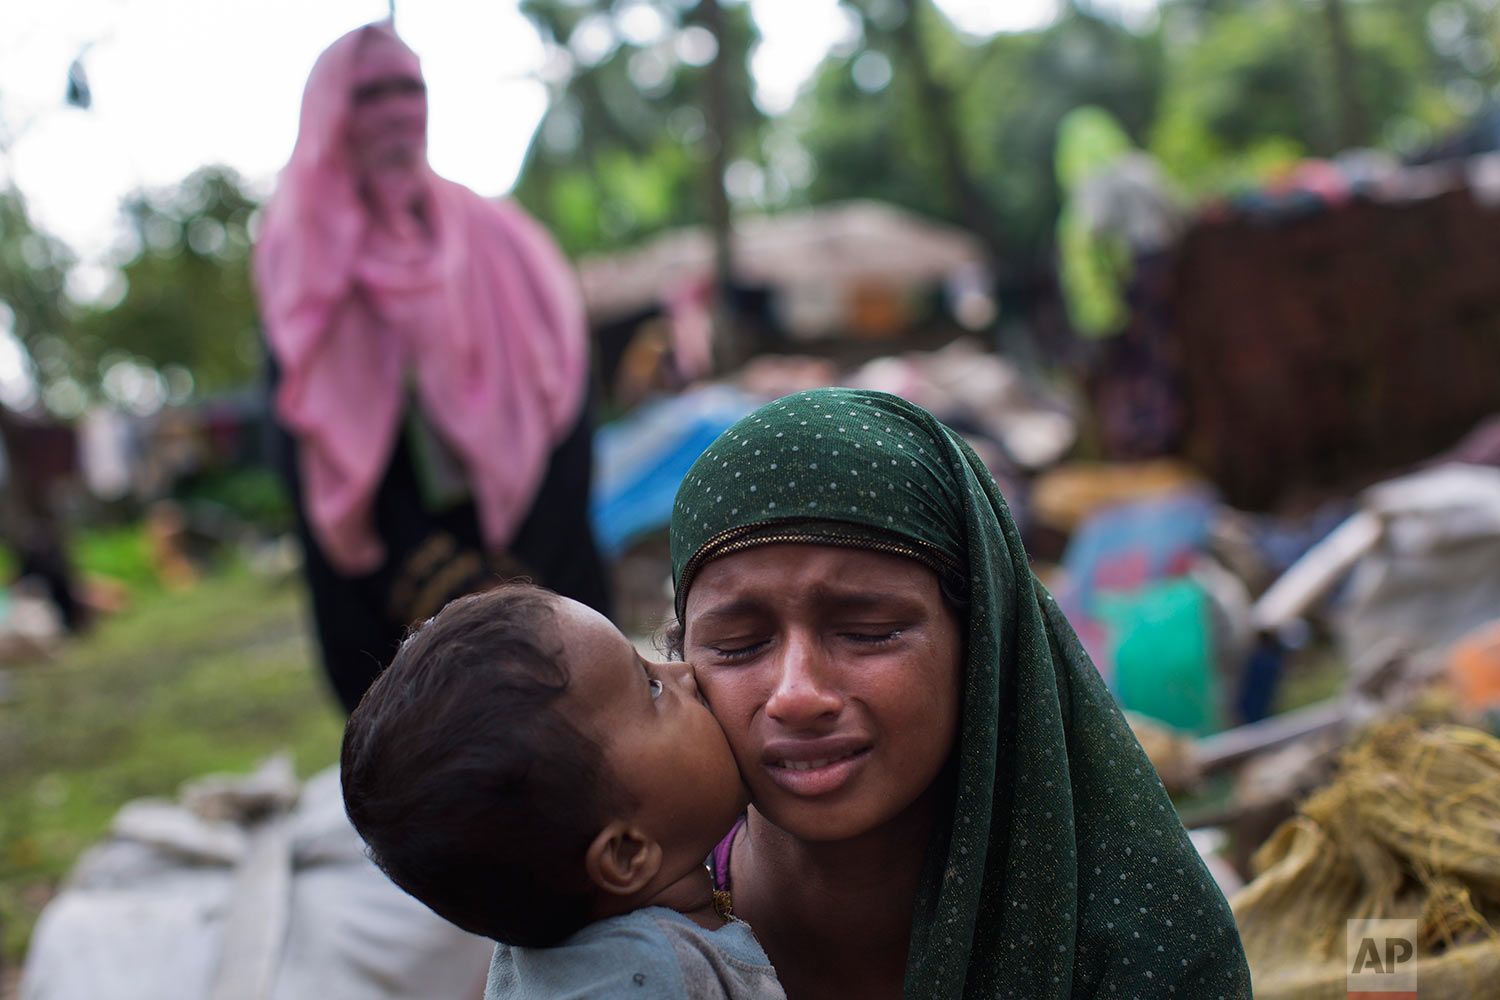 A Rohingya Muslim child places a kiss on his mother's cheek as they rest after having crossed over from Myanmar to the Bangladesh side of the border near Cox's Bazar's Teknaf area, Saturday, Sept. 2, 2017. (AP Photo/Bernat Armangue)